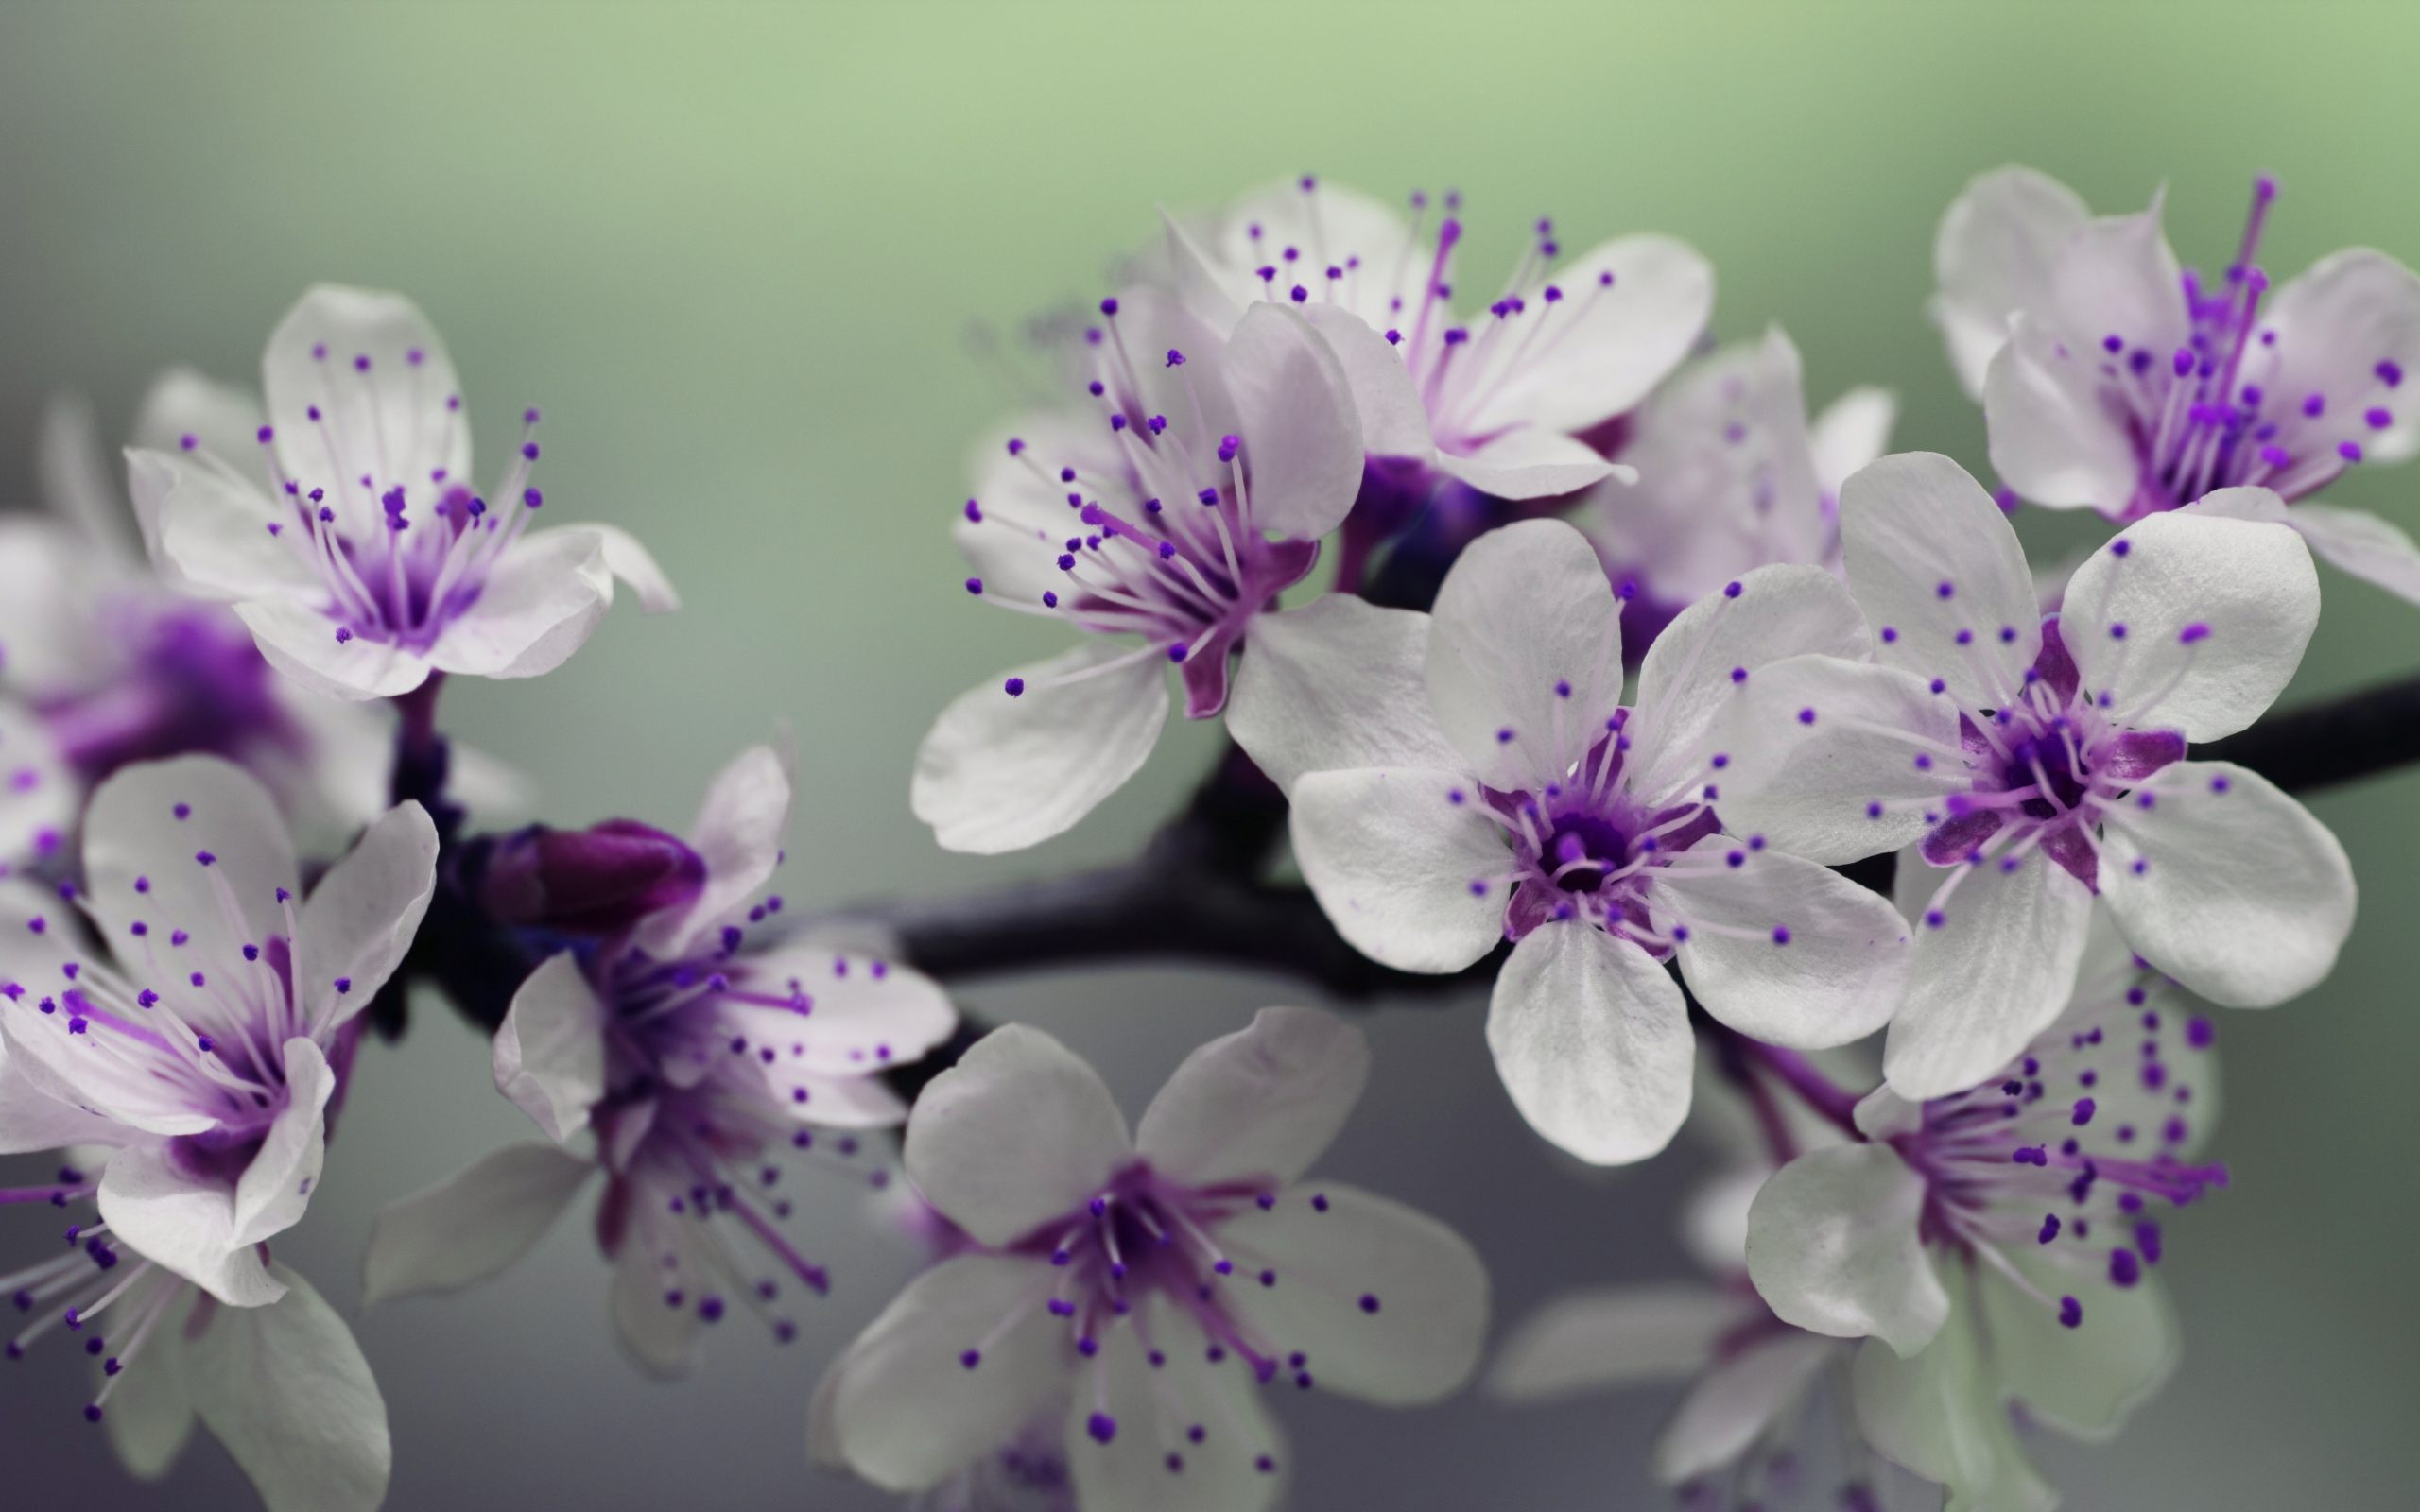 Cherry Blossom Wallpaper Wallpapers